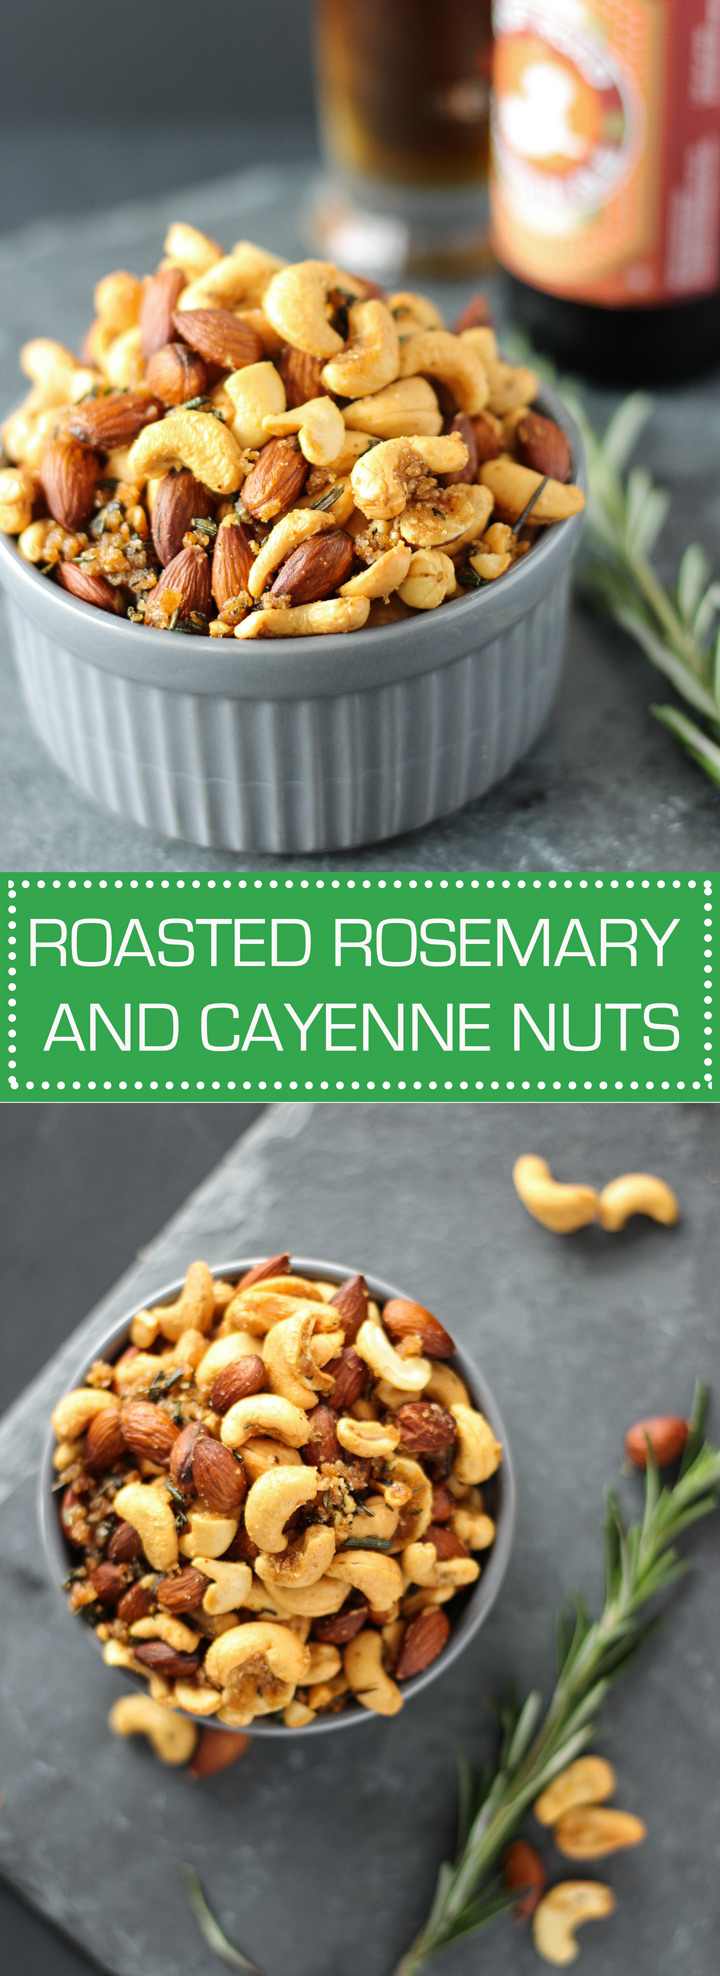 Roasted Rosemary and Cayenne Nuts - the perfect snack to have on Football Sunday!